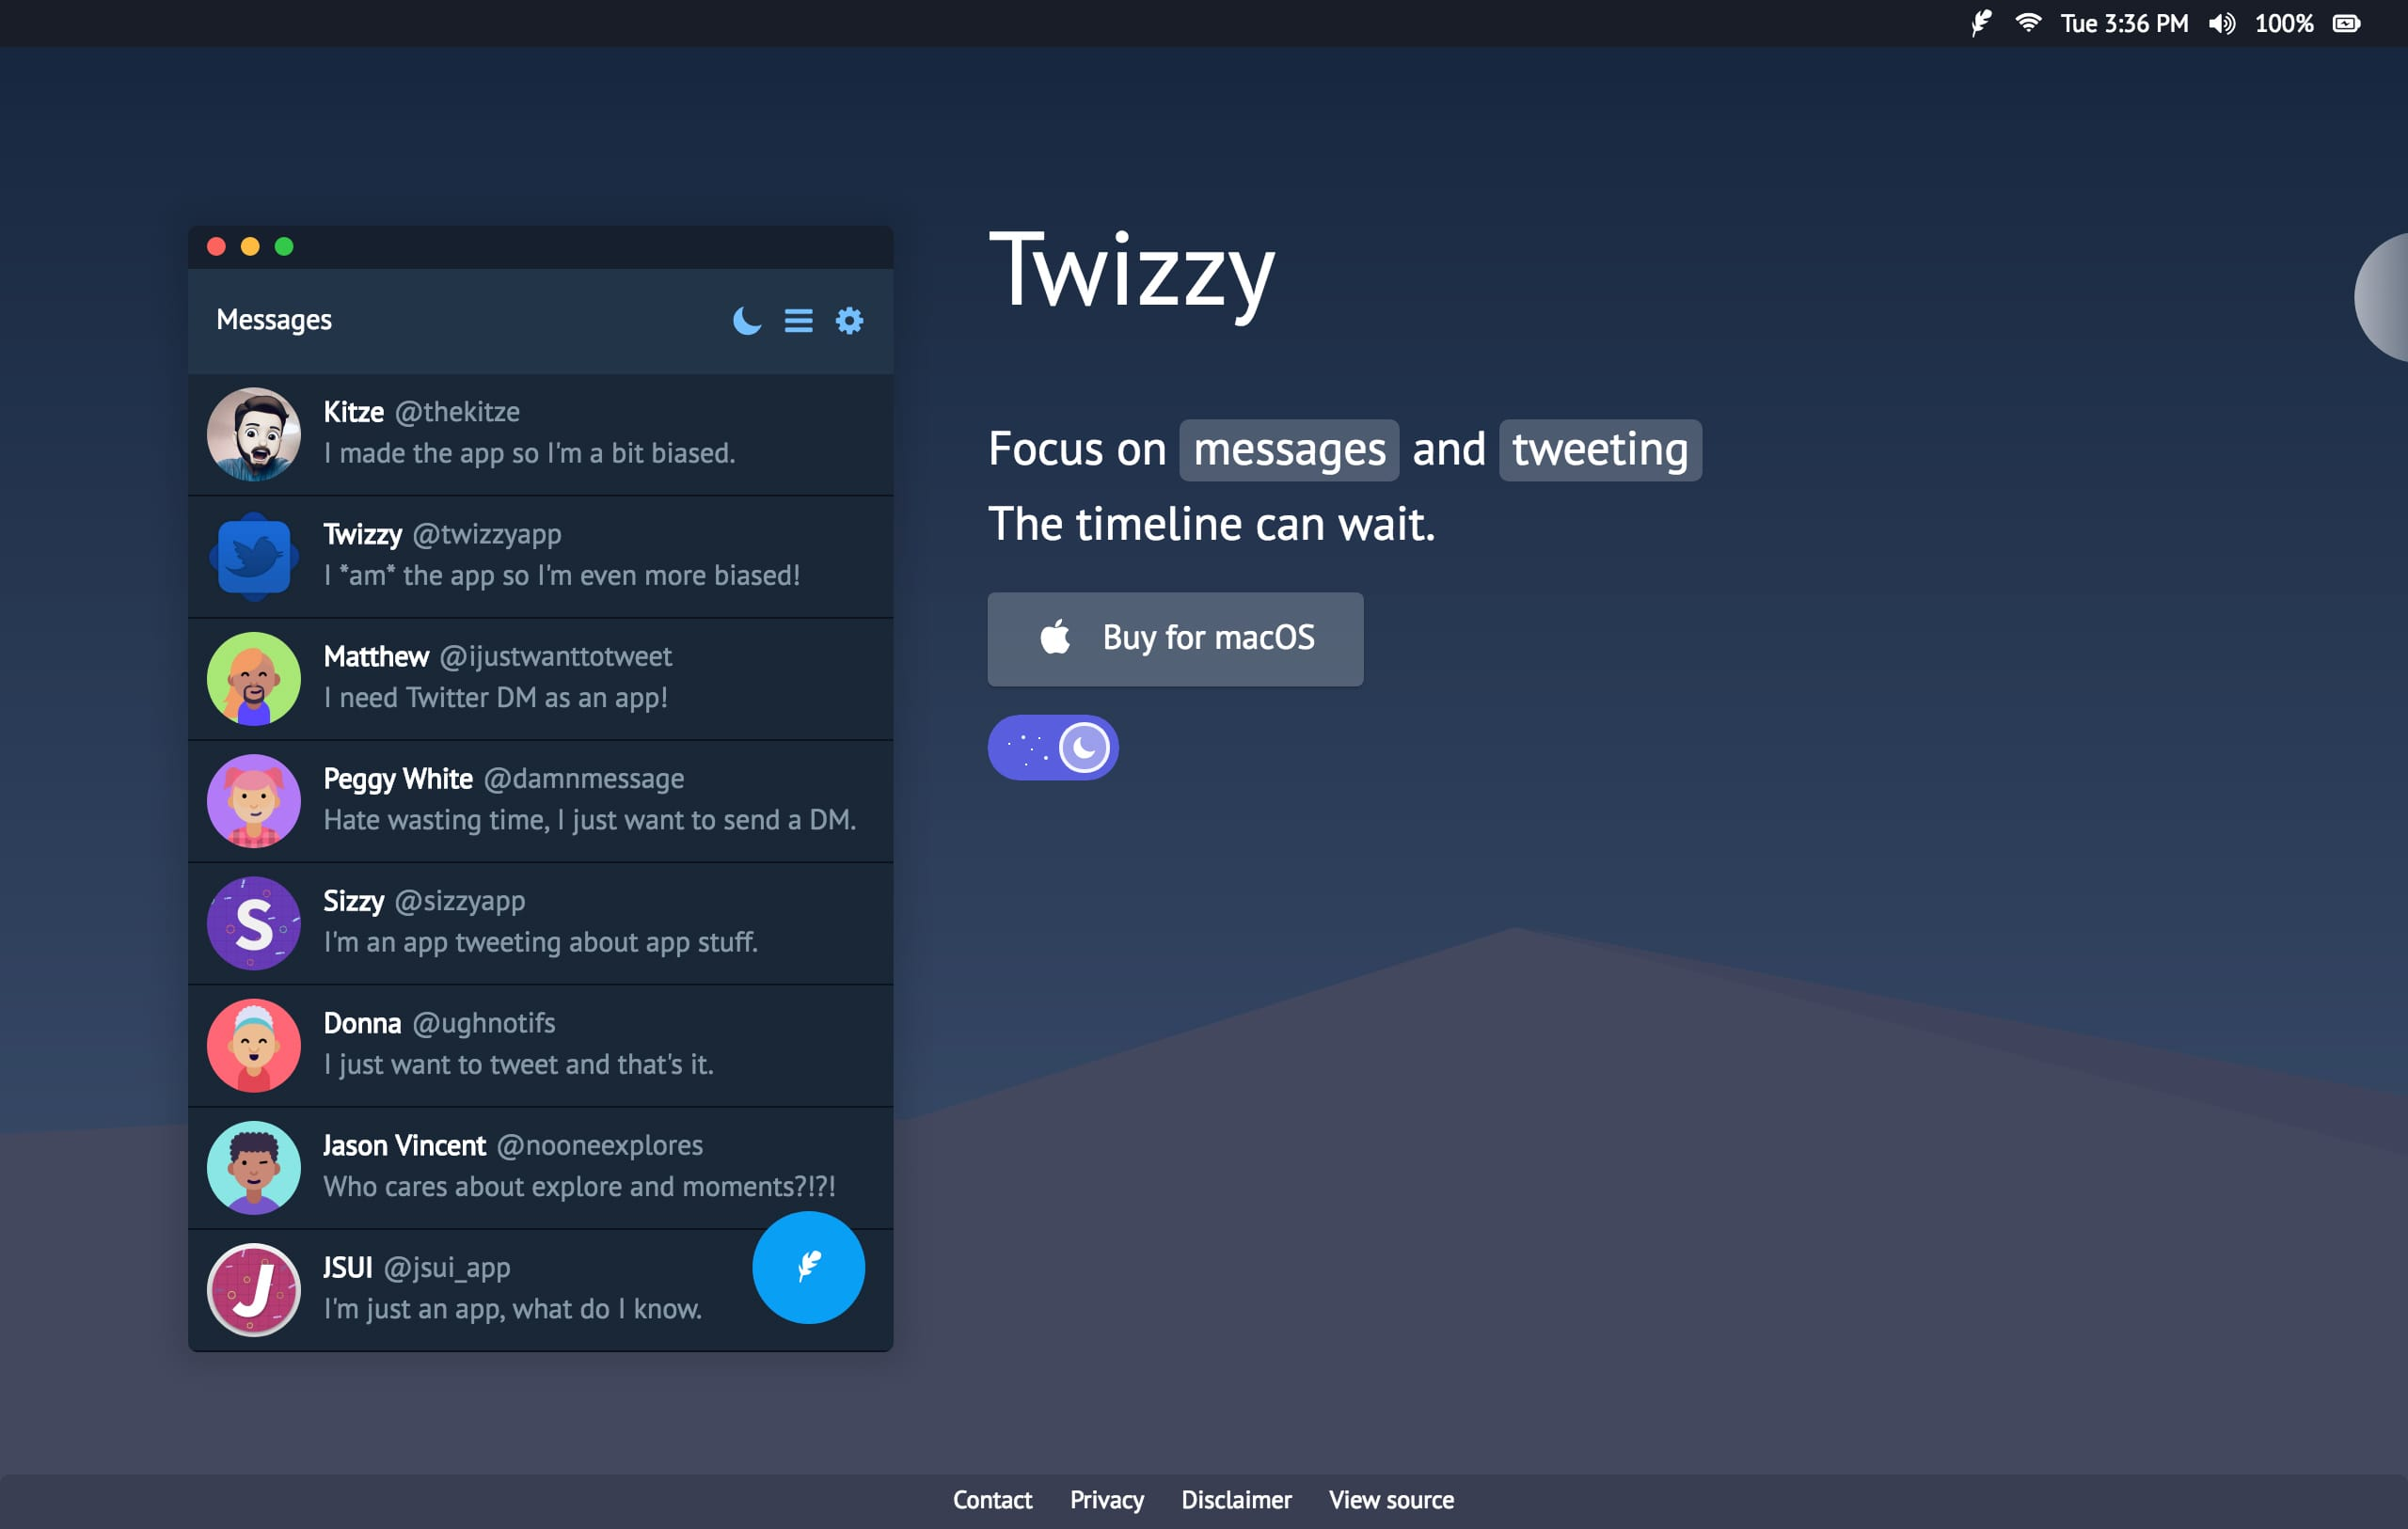 Twizzy Website Screenshot